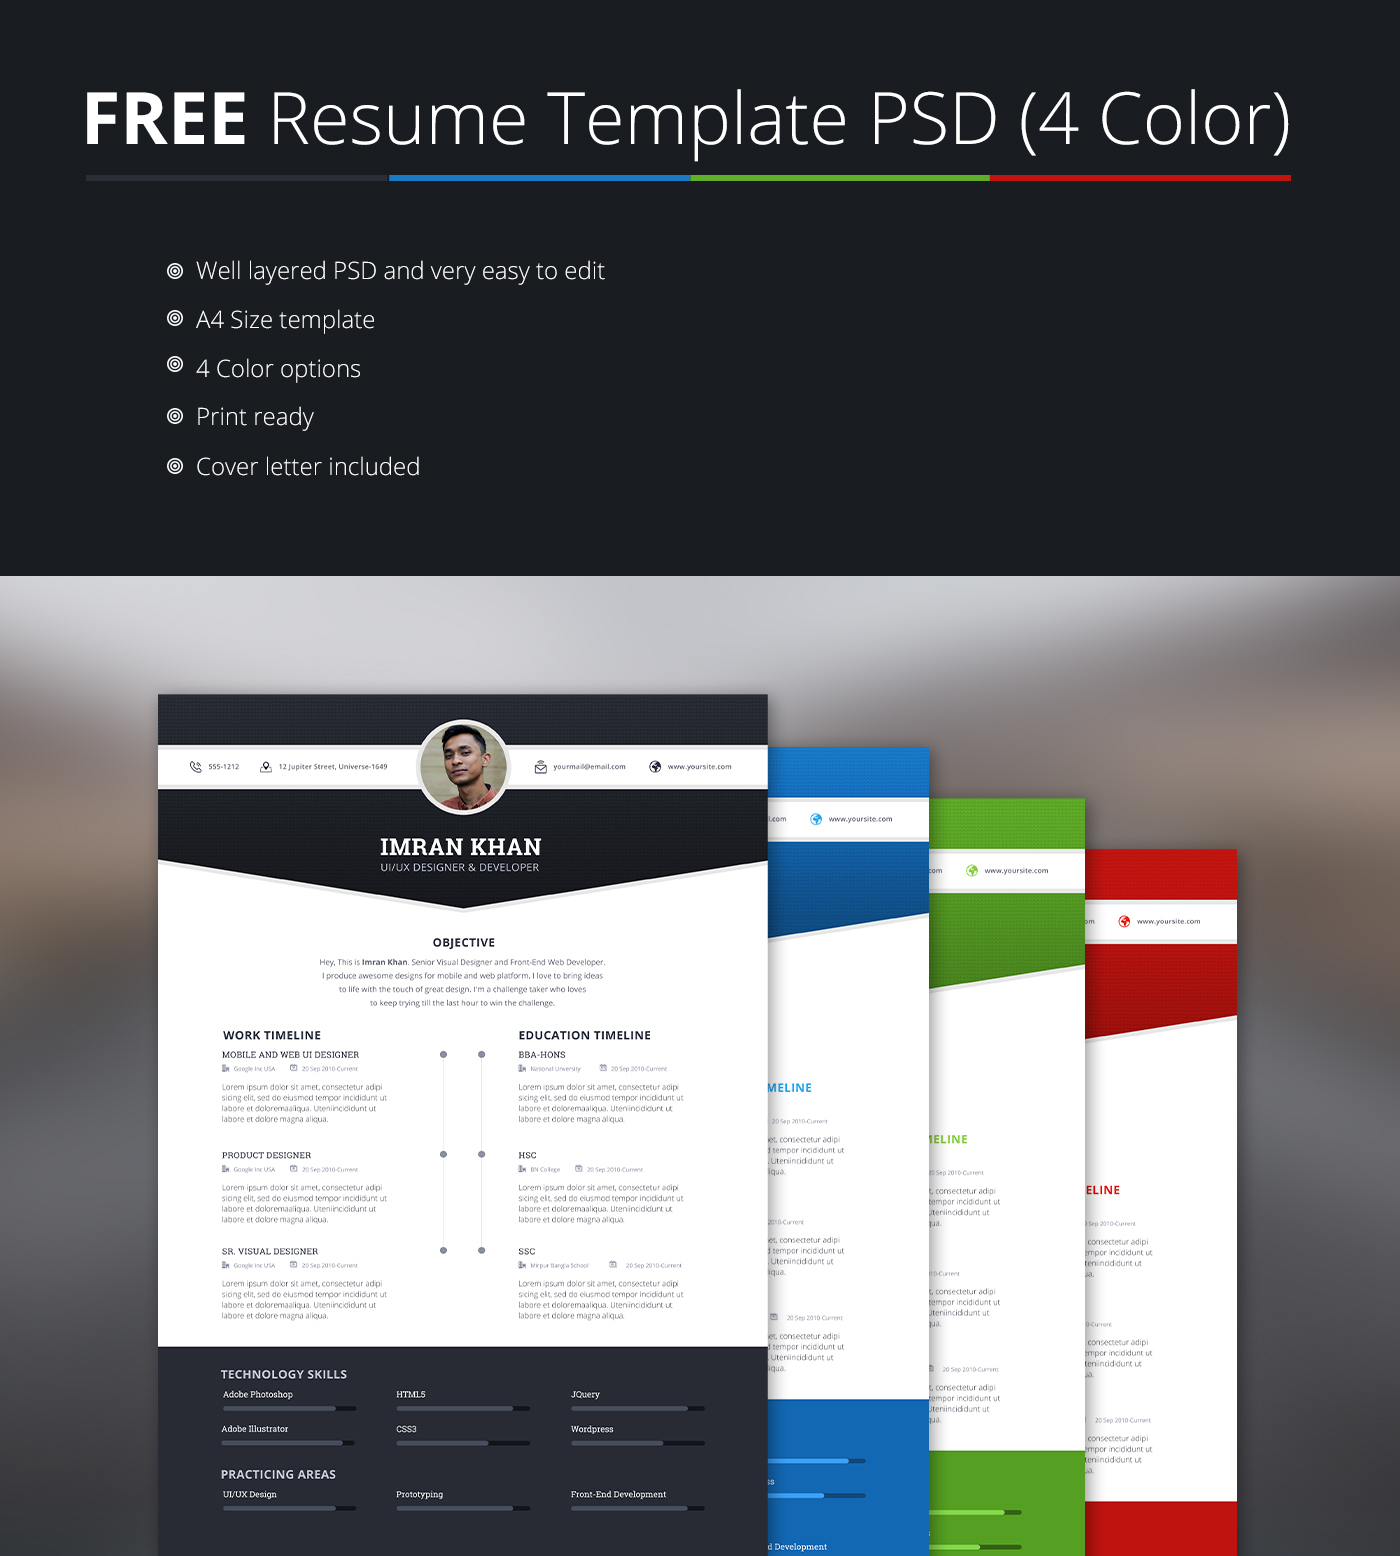 free resume template psd 4 colors on behance - Download Resumes For Free